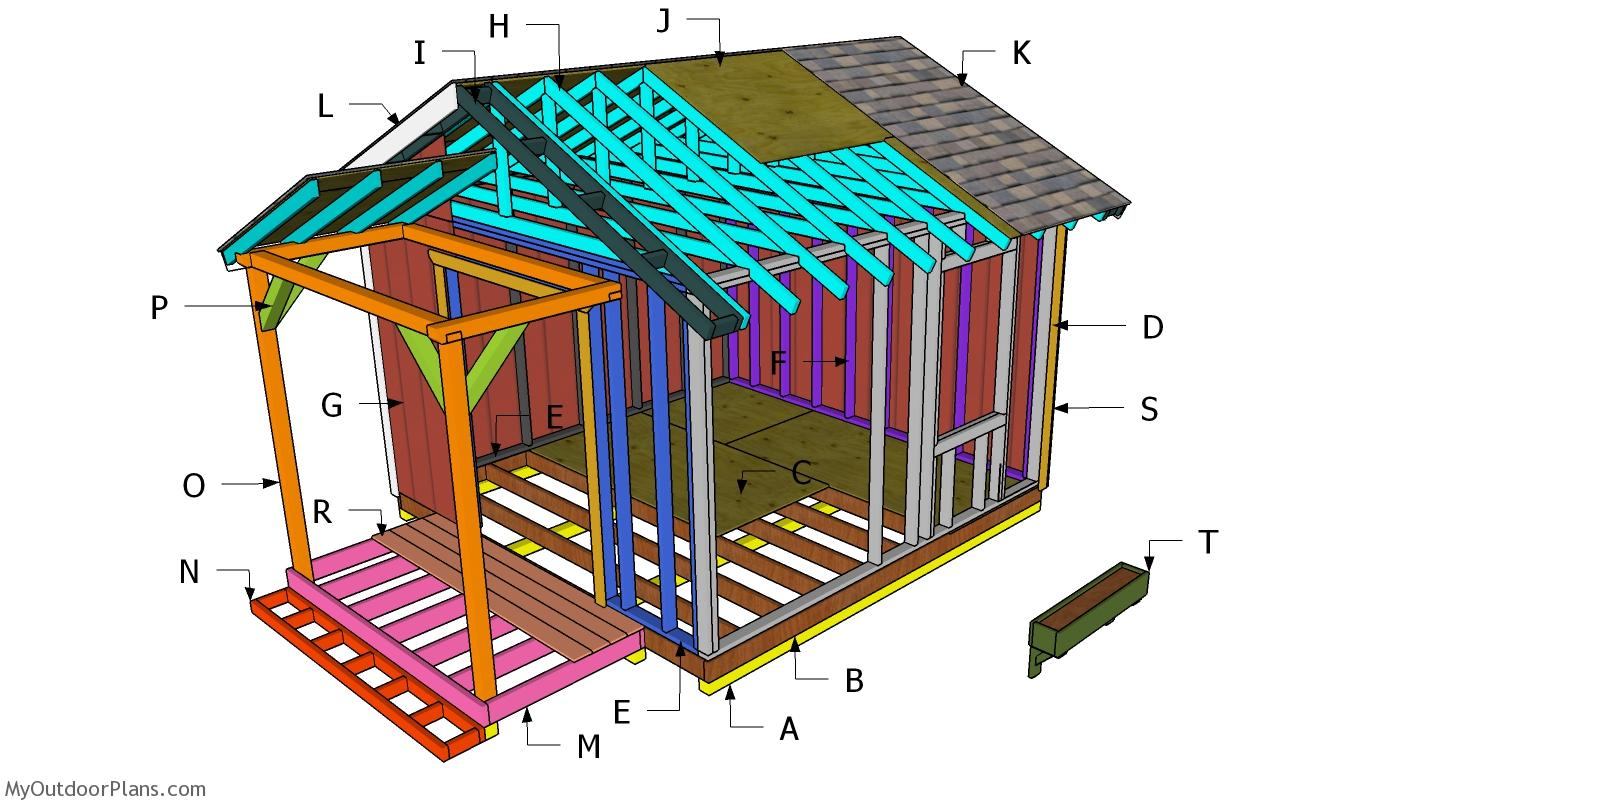 12x12 She Shed Porch - Free DIY Plans